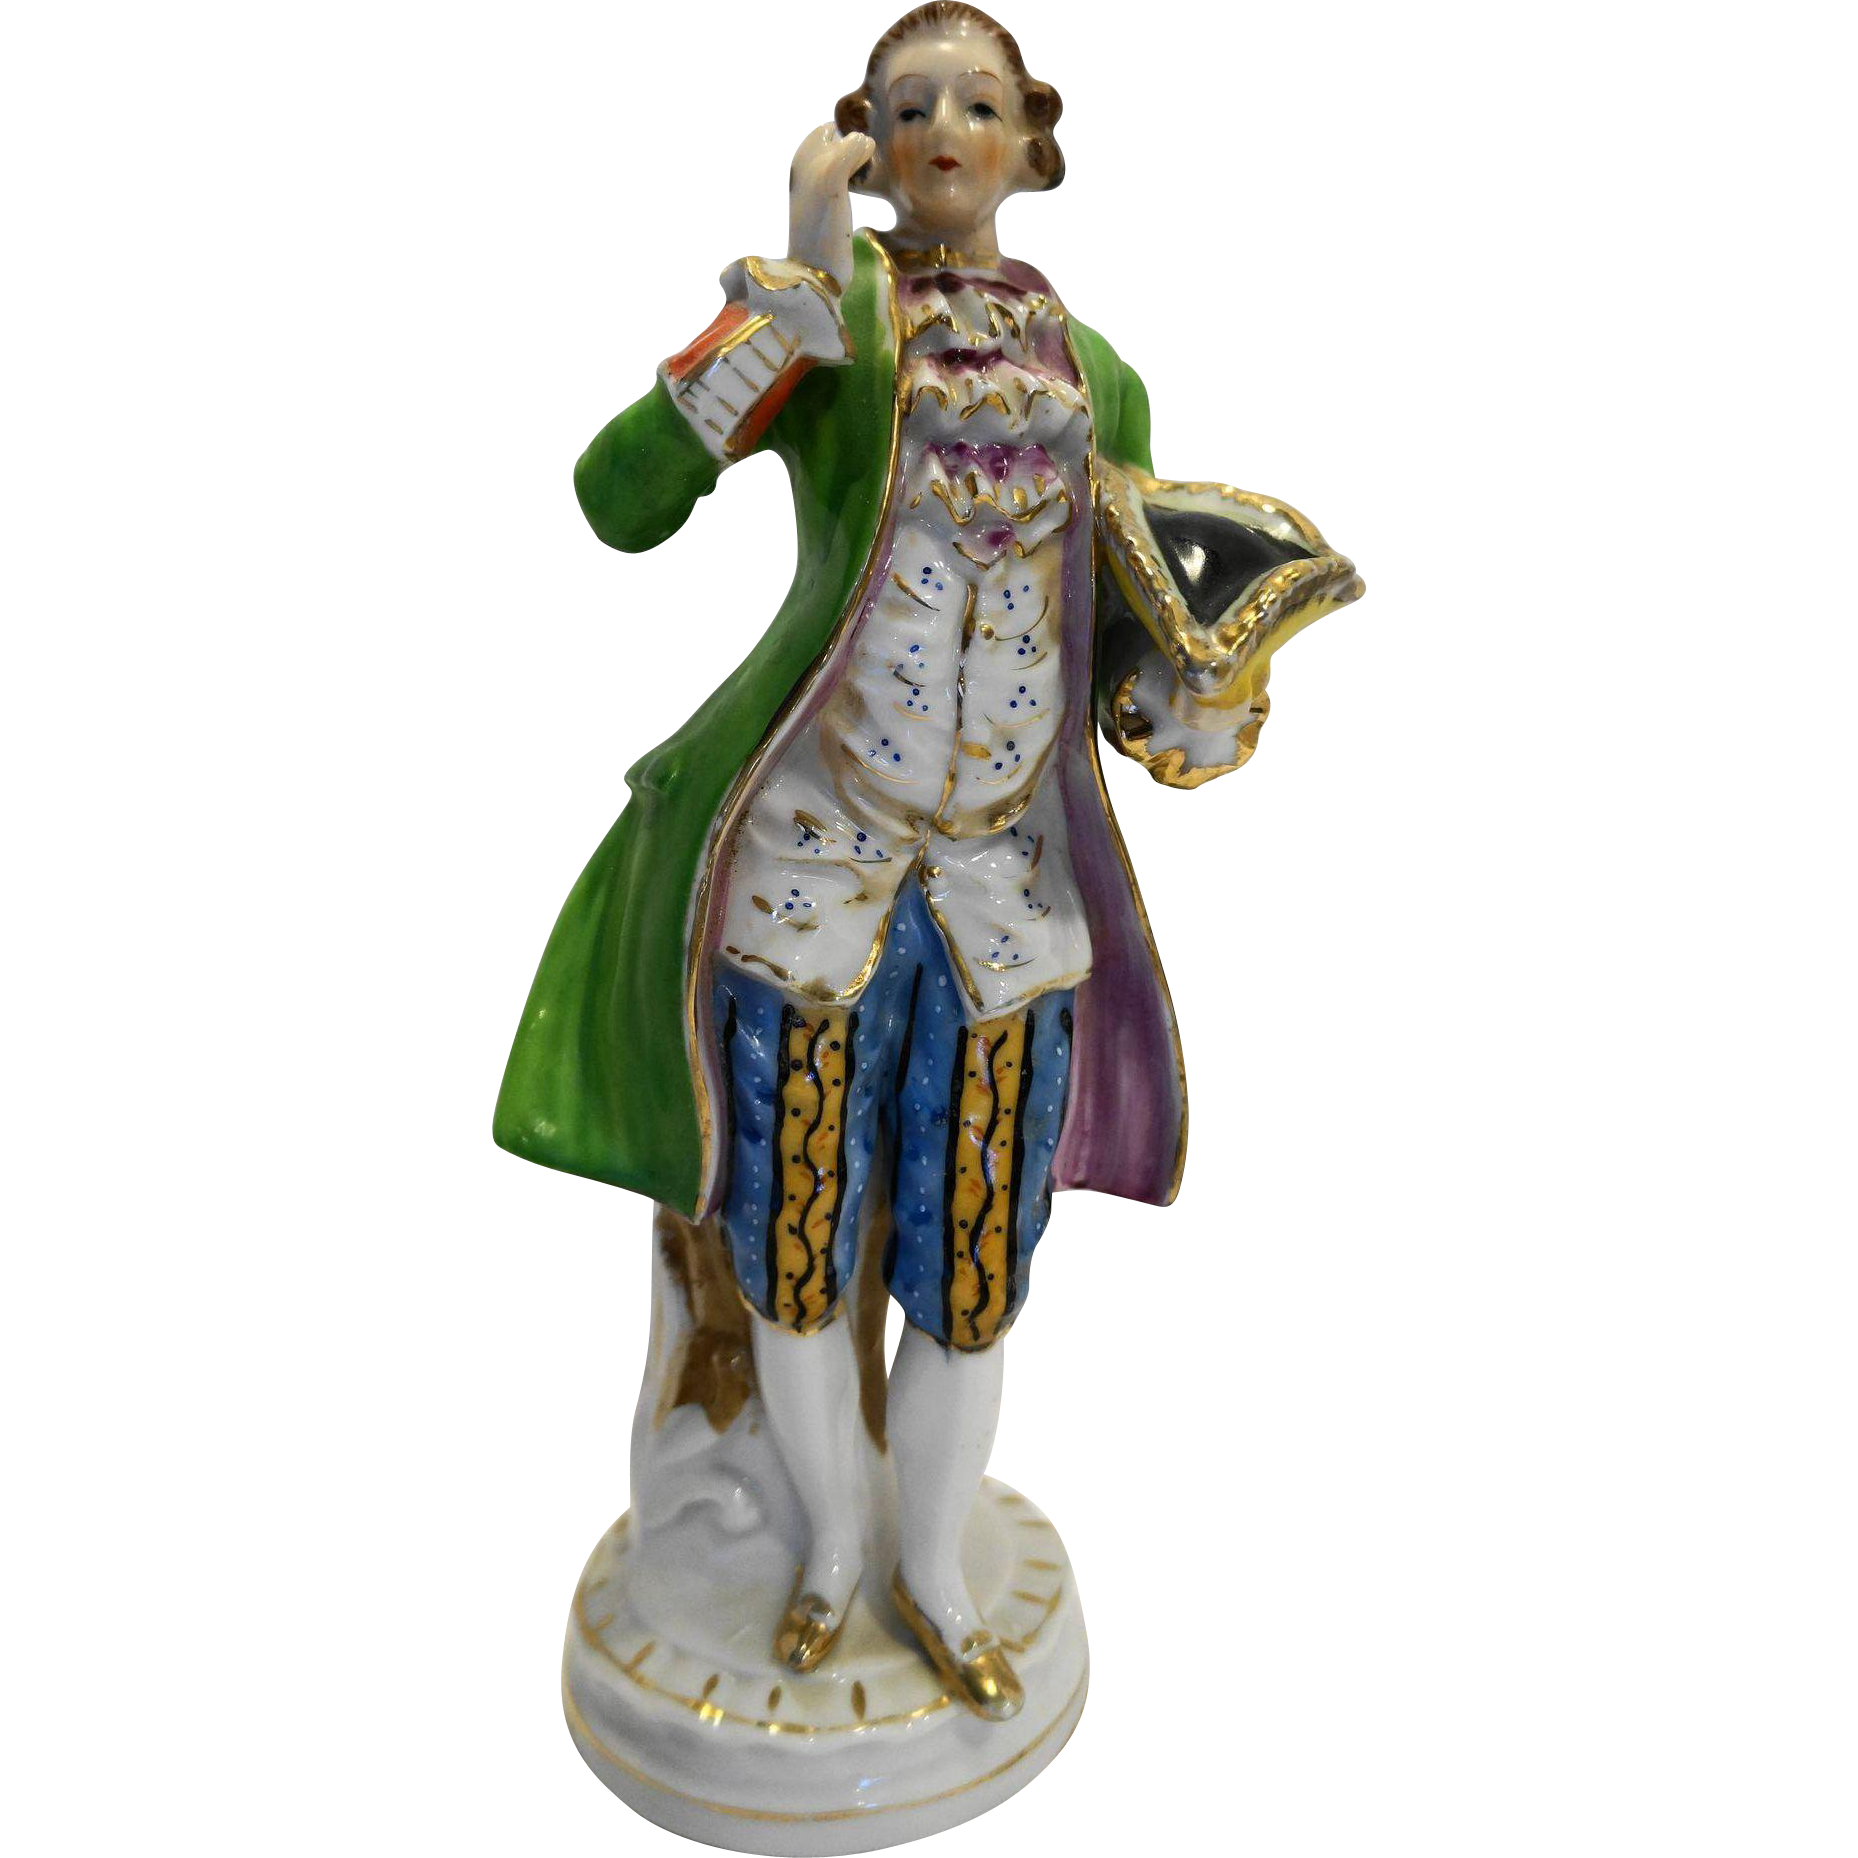 Occupied Japan Colonial Man Green Coat Porcelain Figurine 10 IN